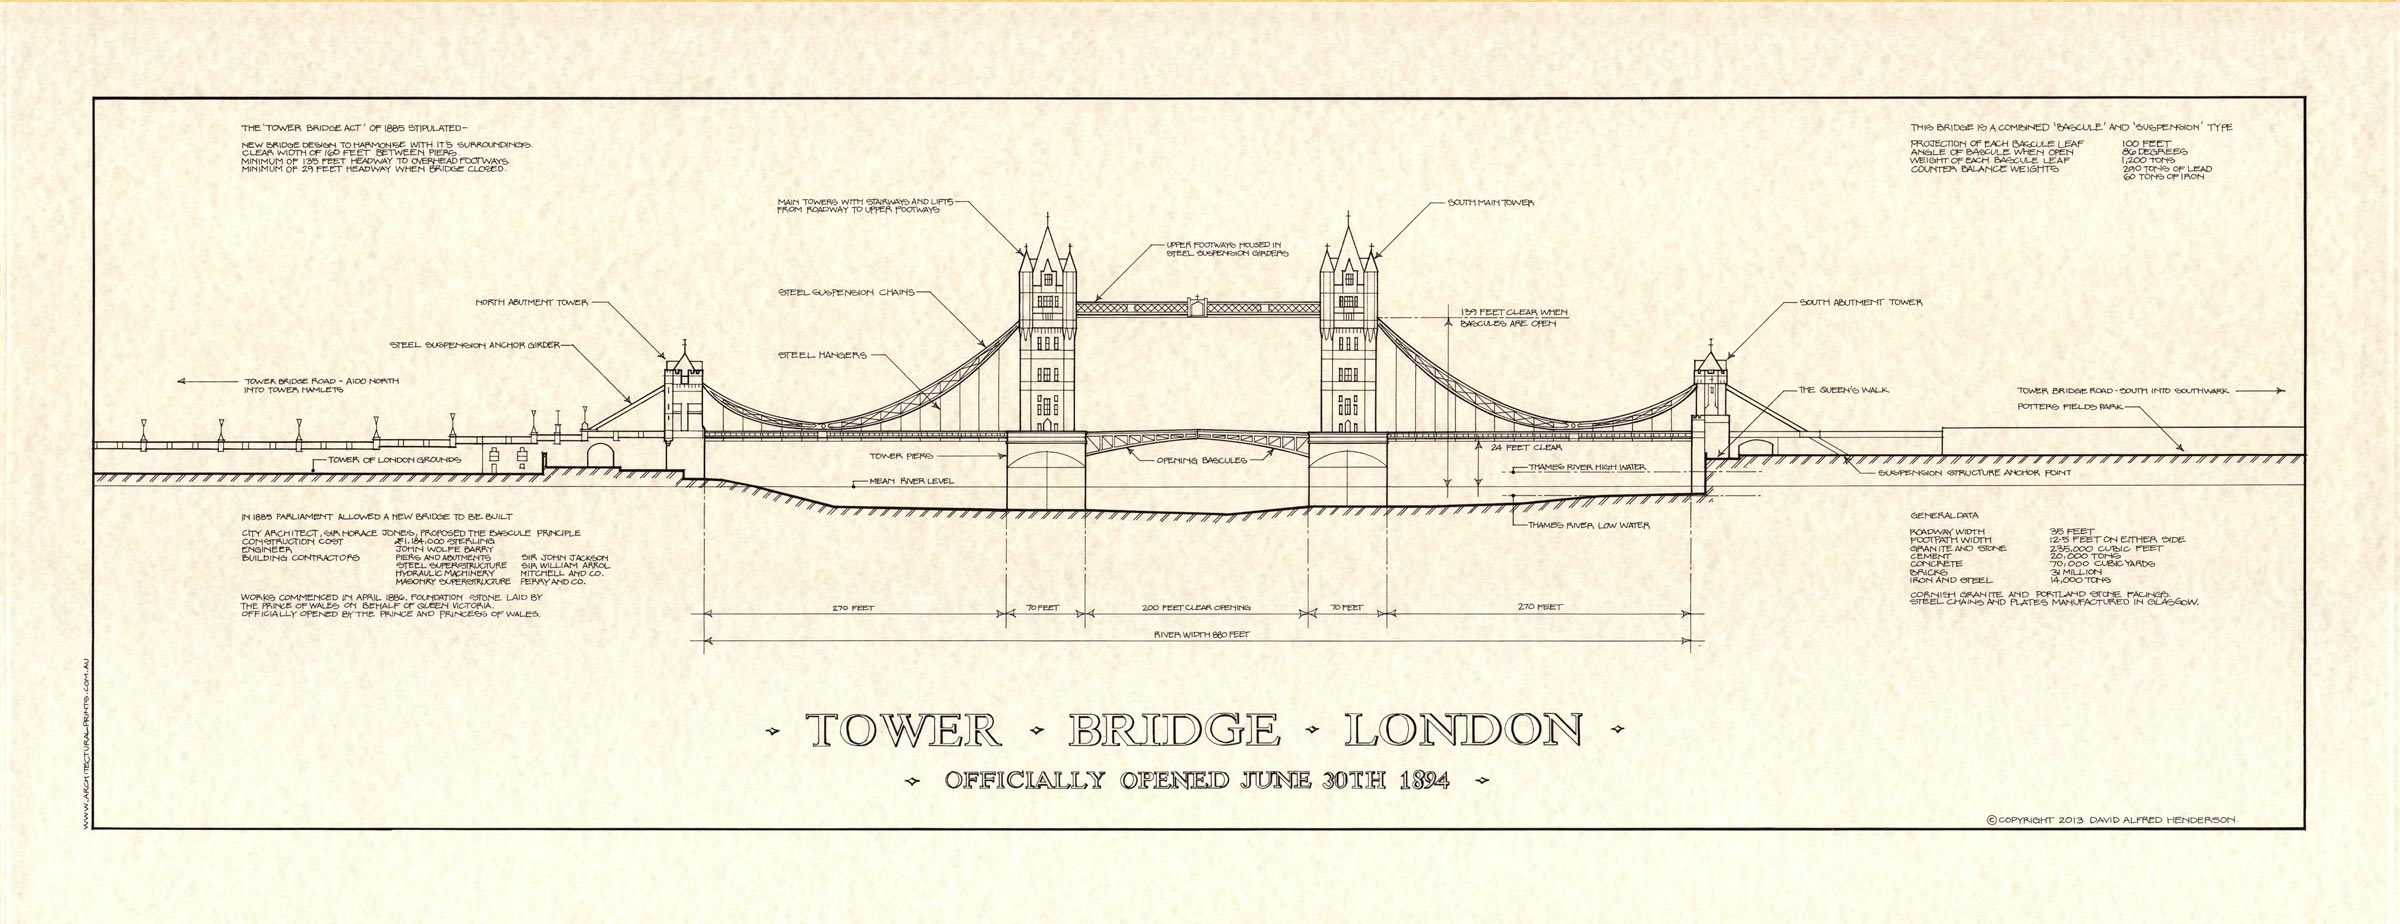 London tower bridge print architectural prints for Print architectural plans